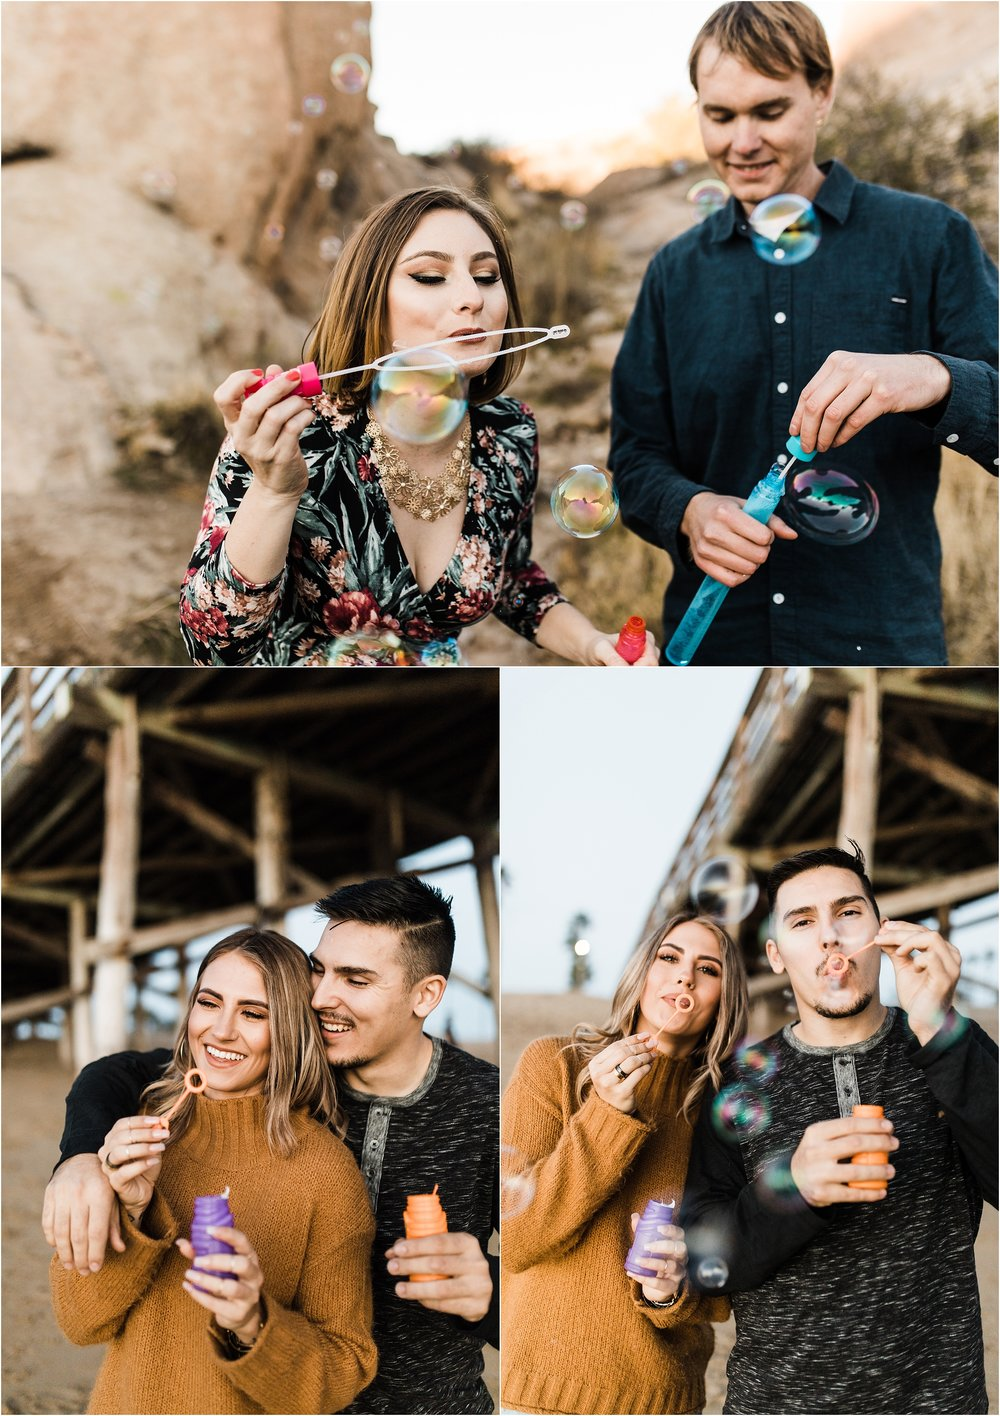 Spice-Up-Your-Engagement-Shoot-With-These-6-Super-Fun-Props-Inspiration-Clarisse-Rae-Southern-California-Wedding-Photographer1.jpg